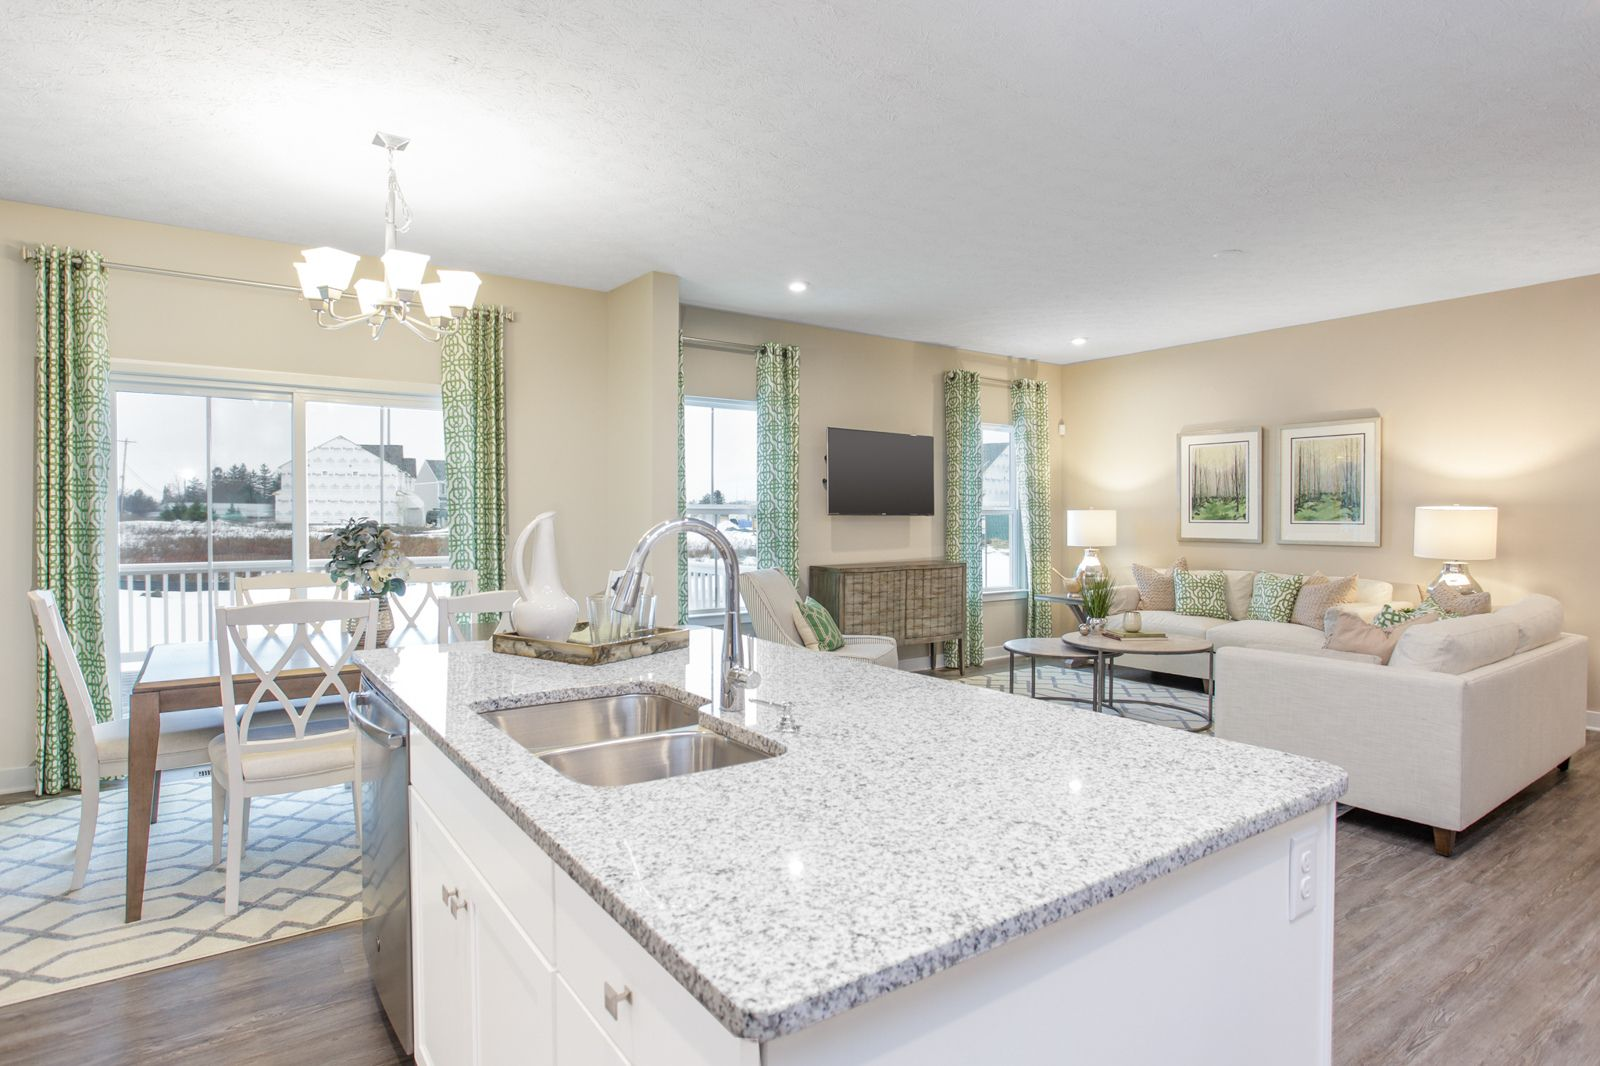 GREAT HOME, GREAT VALUE!:High-end finishes, golf course views, and a low-maintenance lifestyle built for you. Close to Rt 22 & 130 with low Westmoreland taxes.Click here to schedule your visit today!